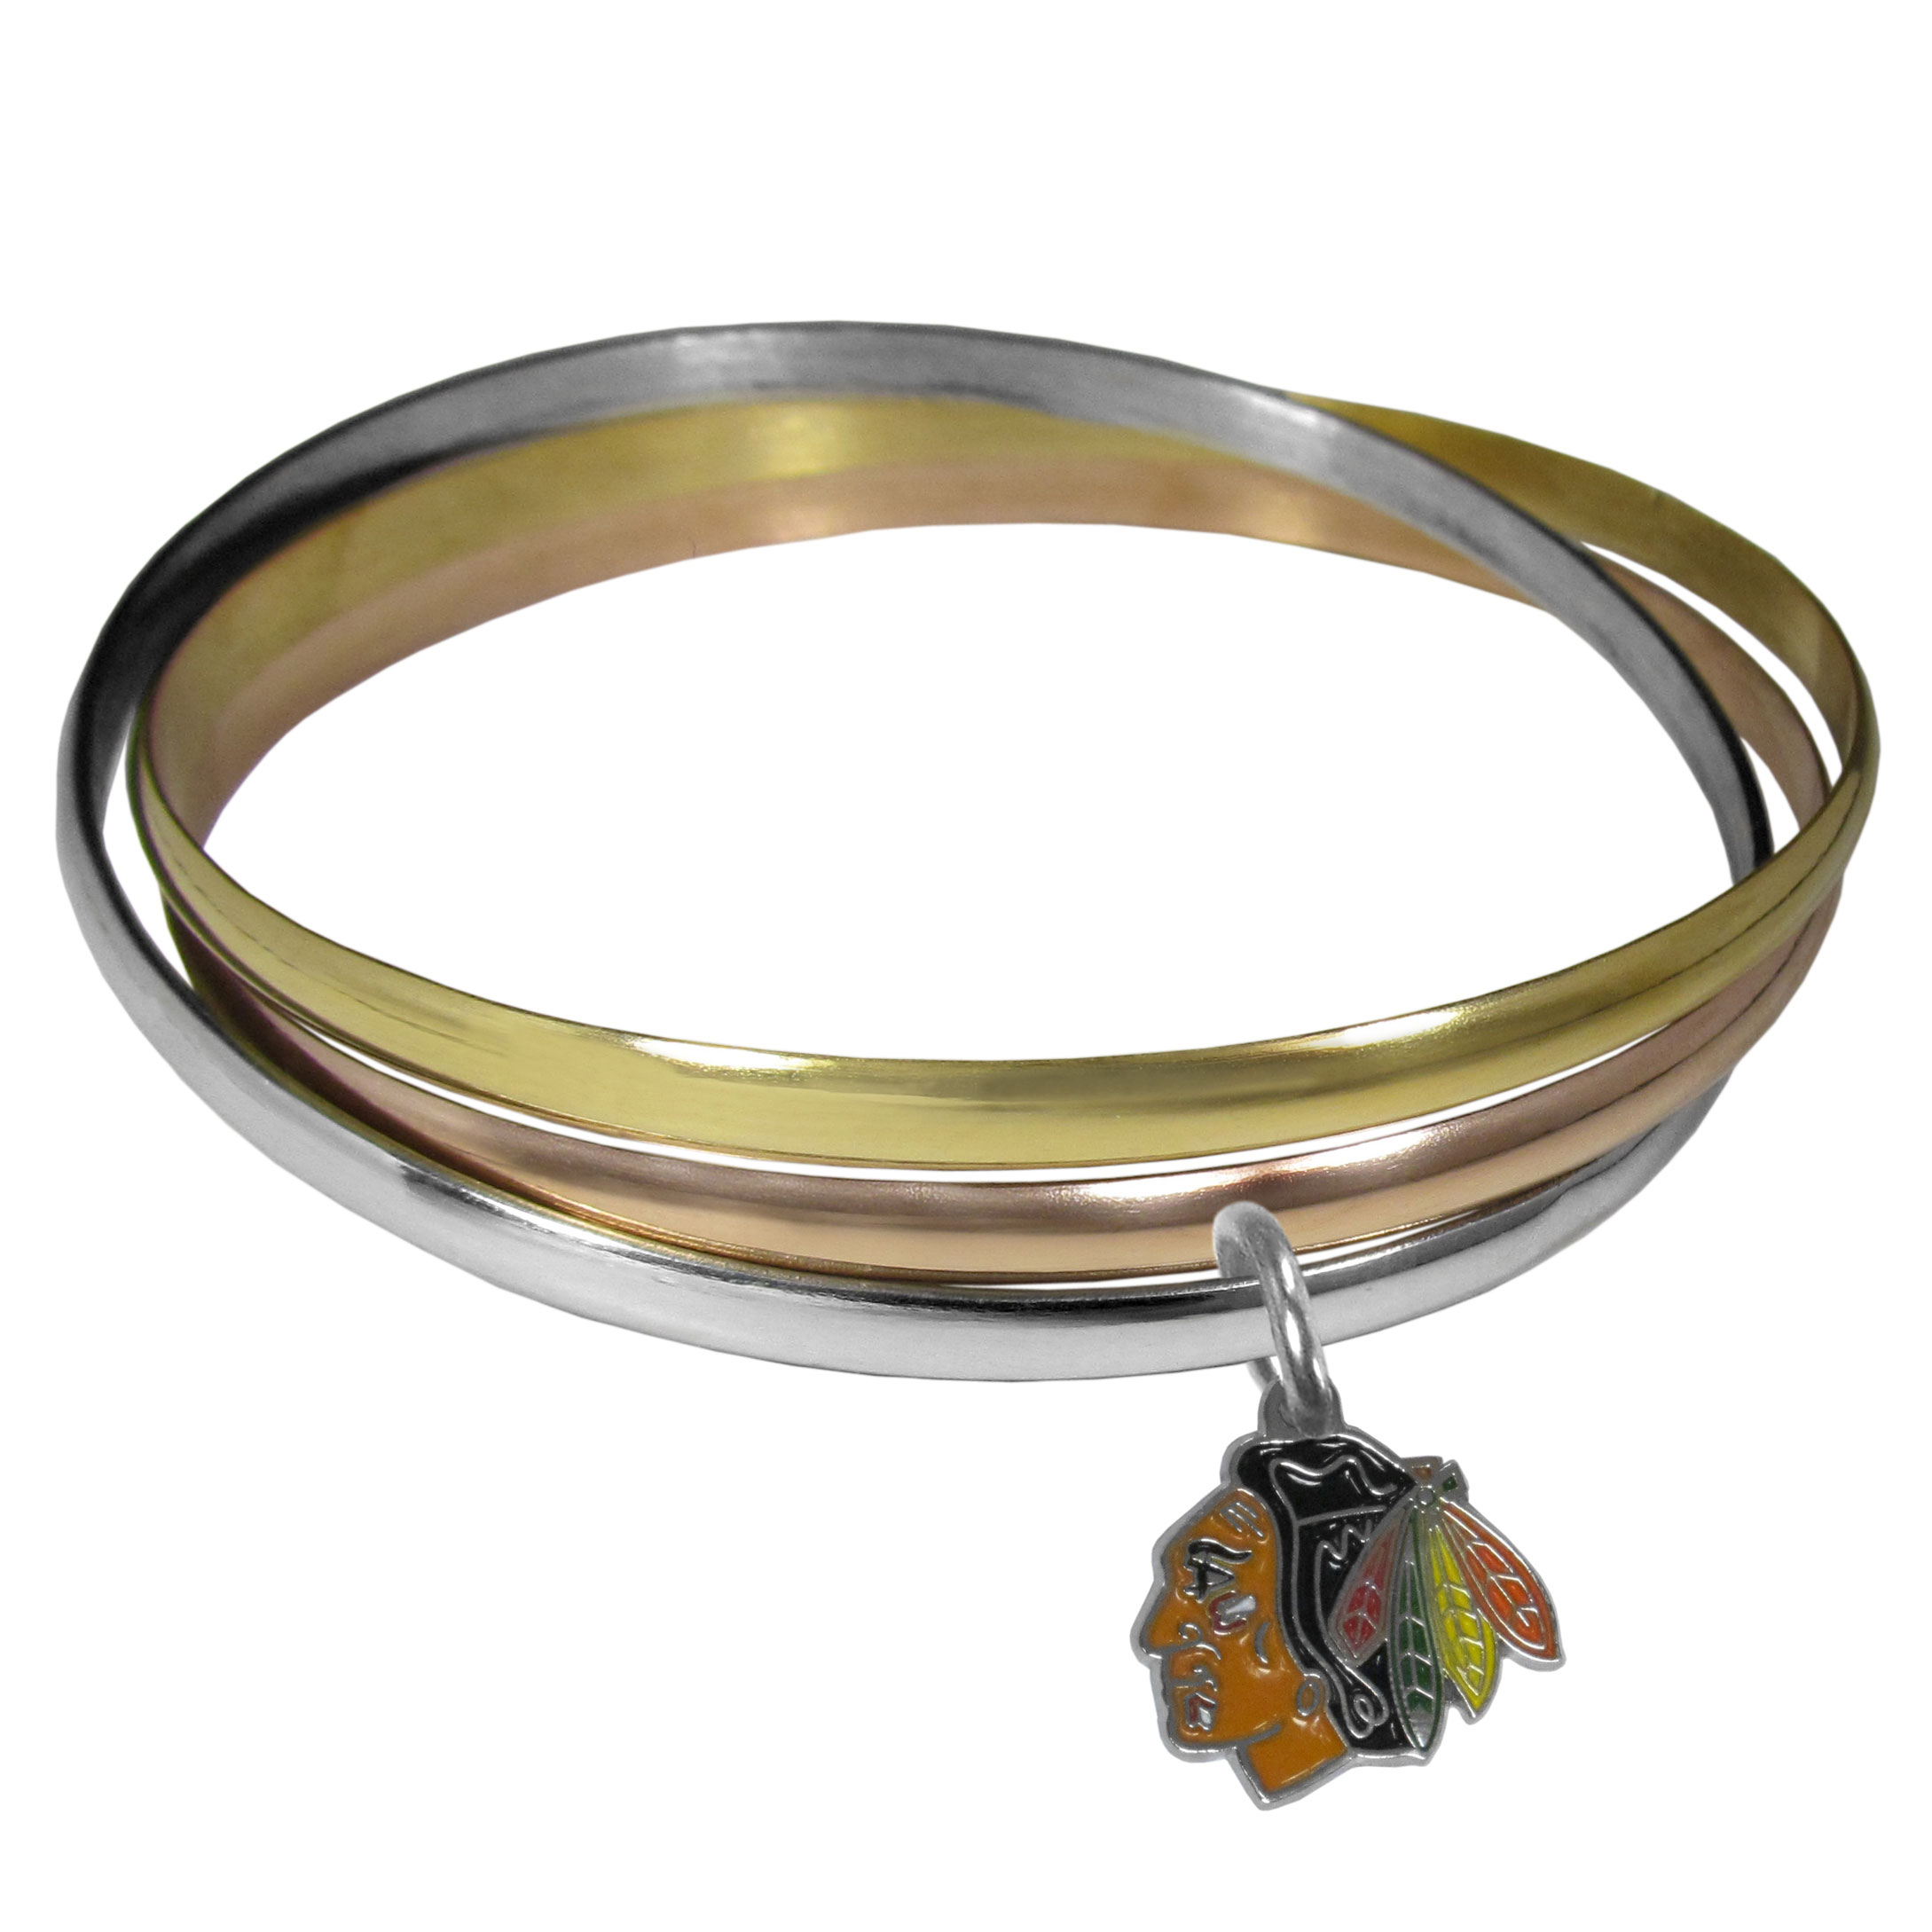 Chicago Blackhawks® Tri-color Bangle Bracelet - These beautiful bangles come in a interlocking style and feature a fully cast Chicago Blackhawks® charm with enameled team colors. The bracelet has a silver toned bangle, gold tone bangle and brass toned bangle.